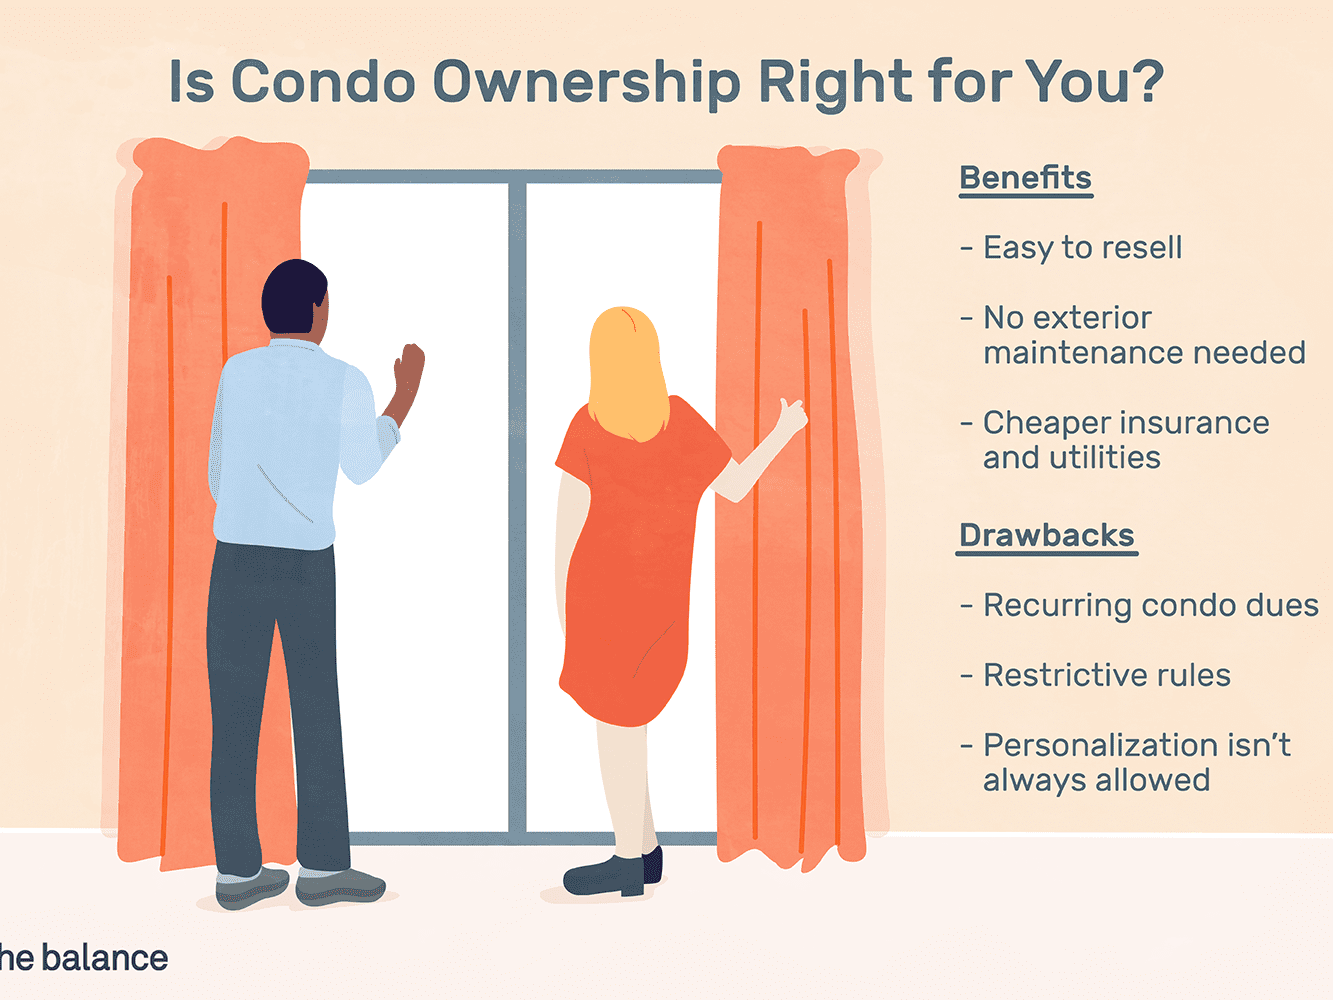 The Pros And Cons Of Condo Ownership